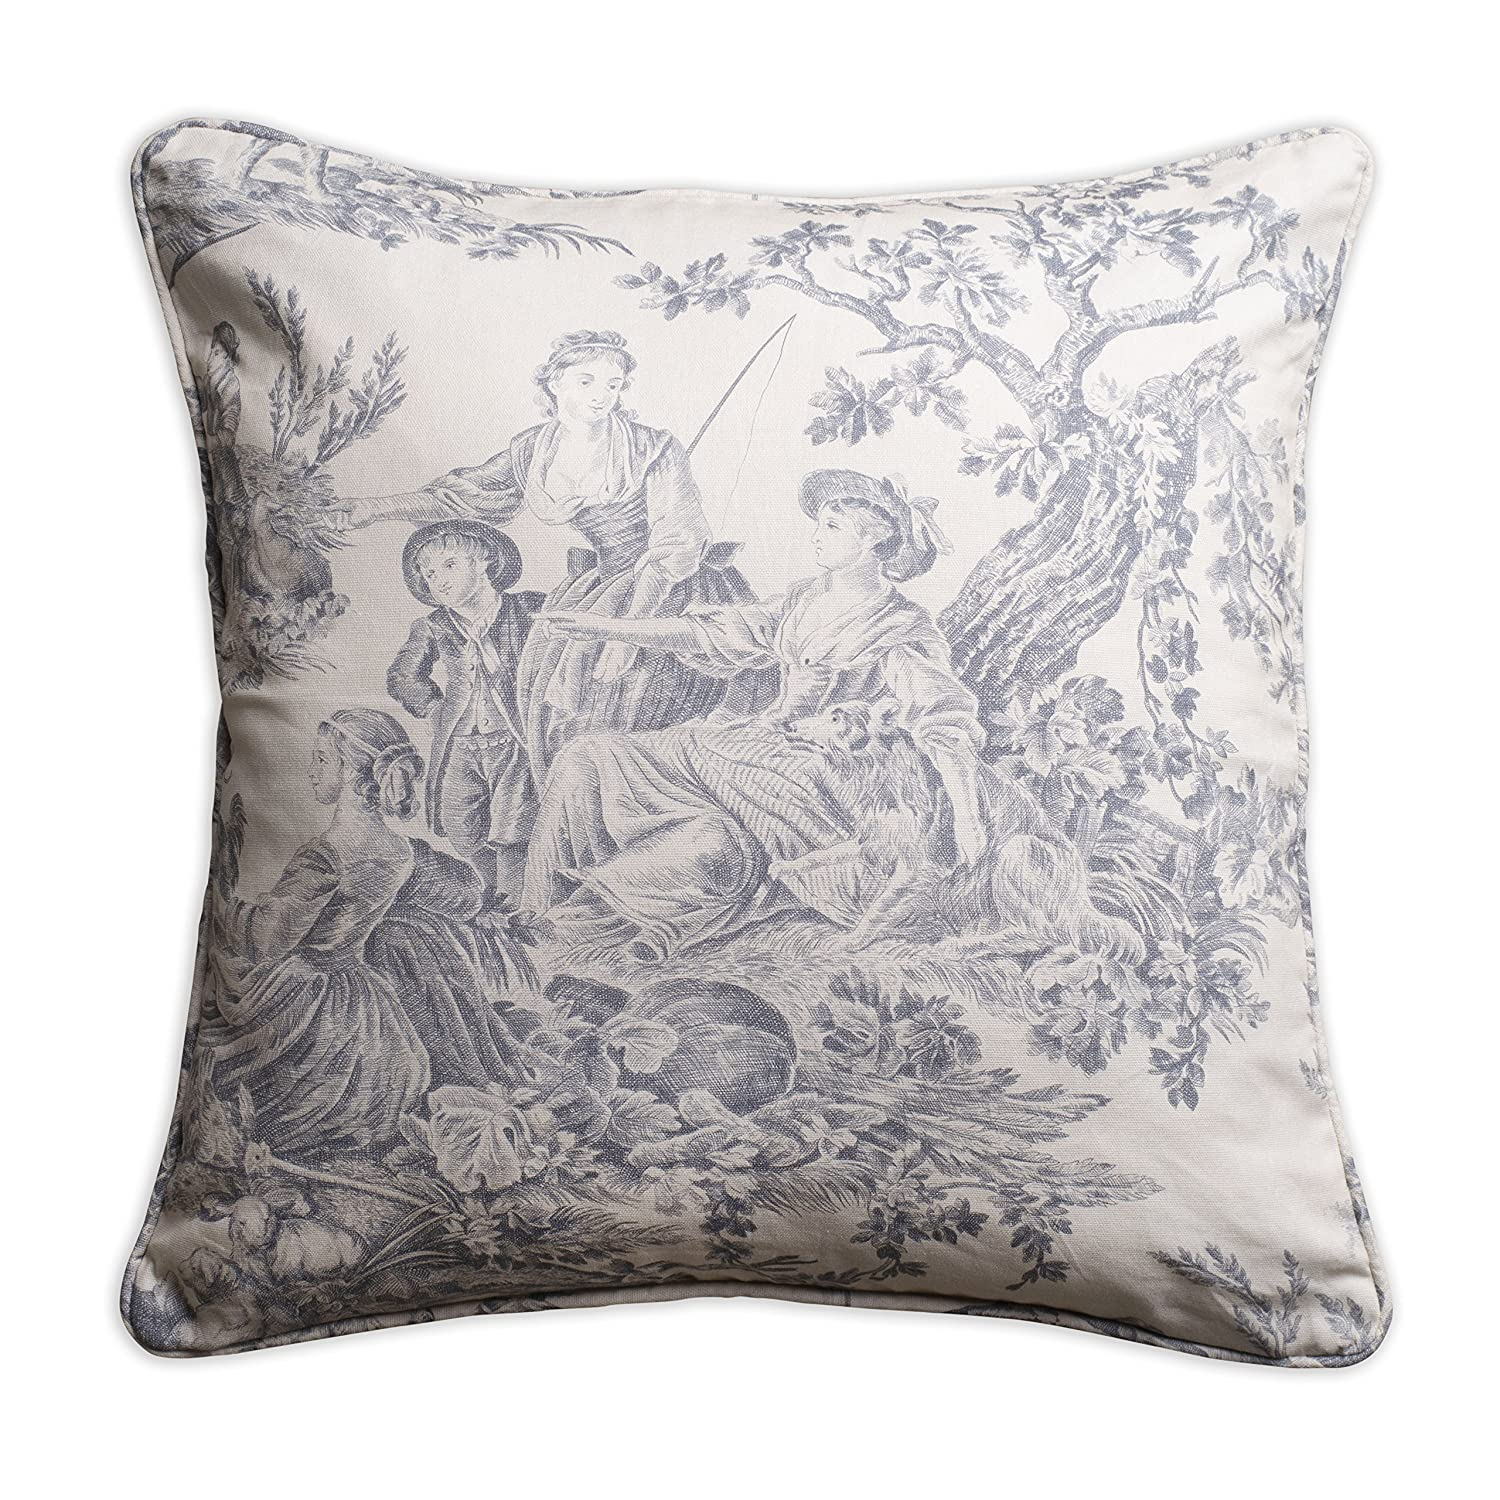 Blue and white tole French country pillow cover.